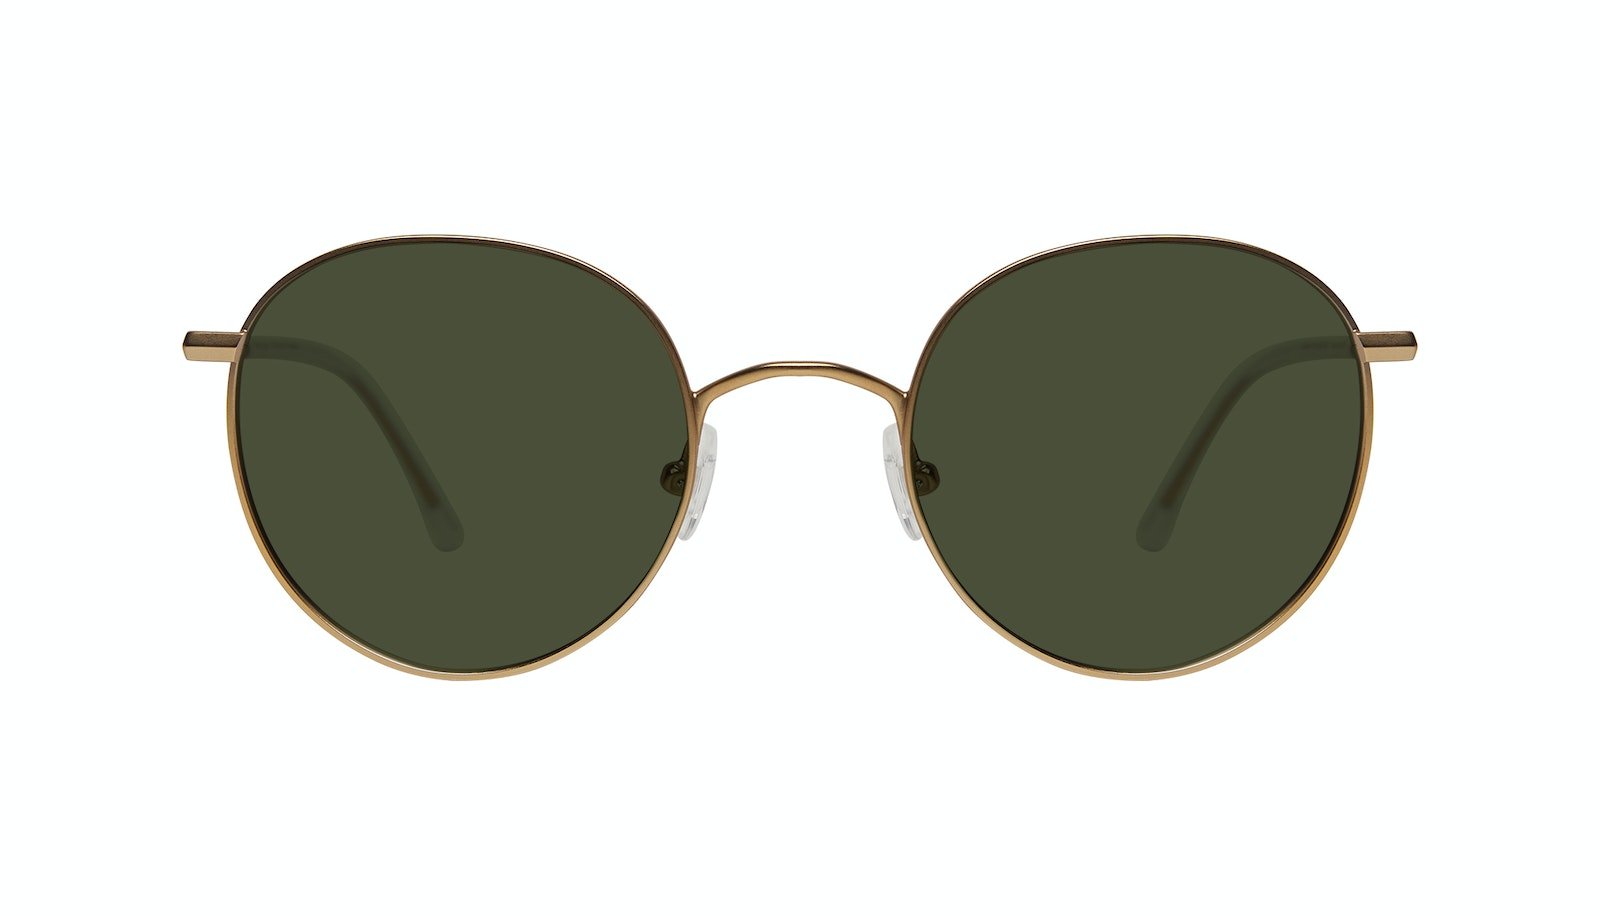 Affordable Fashion Glasses Round Sunglasses Women Finesse Matte Gold